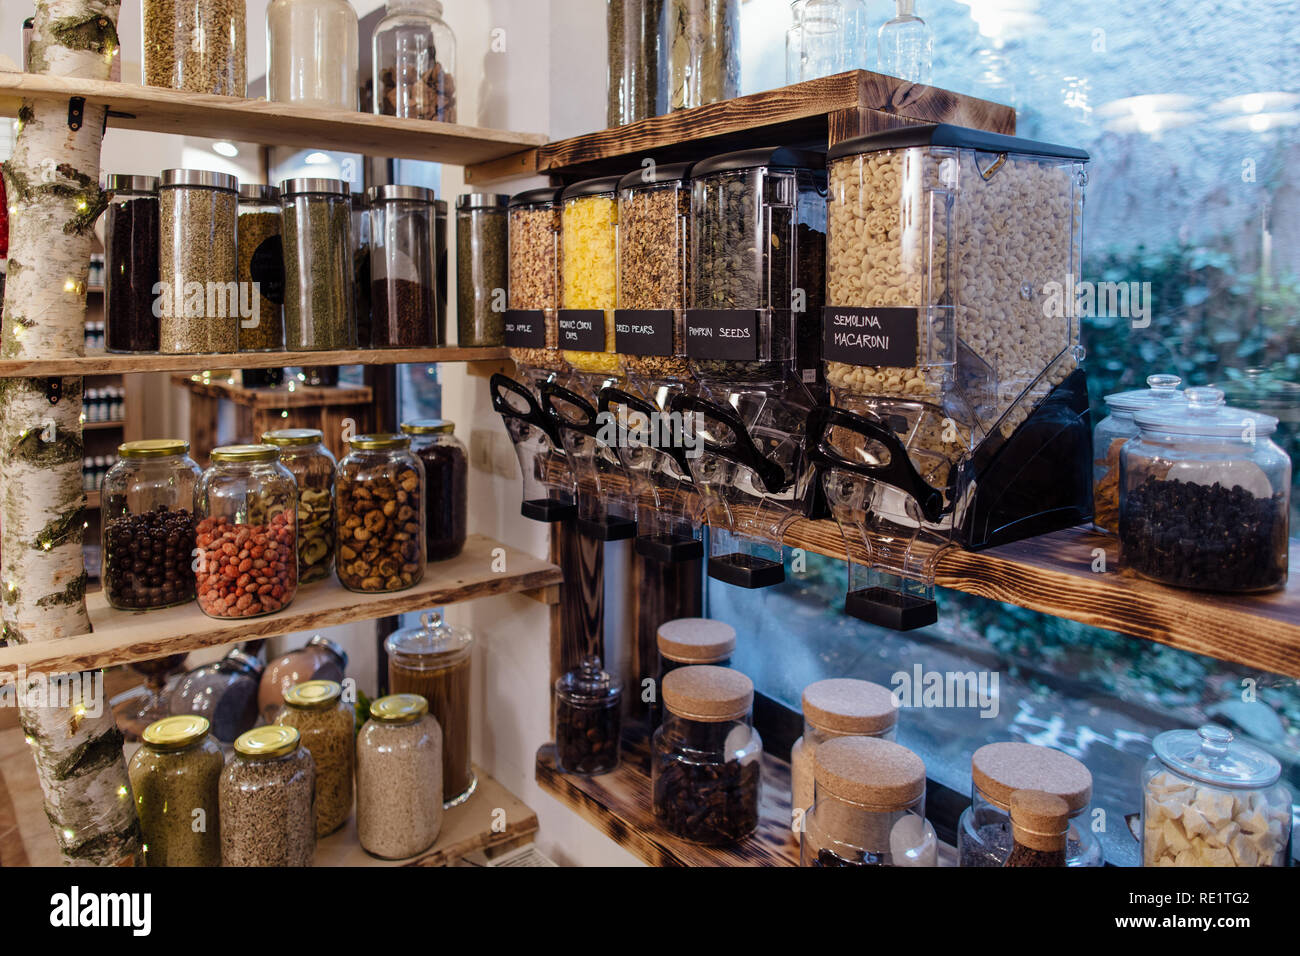 Organic shop interior. Display of glass jars on shelves filled with fresh and dry produce in grocery store. - Stock Image